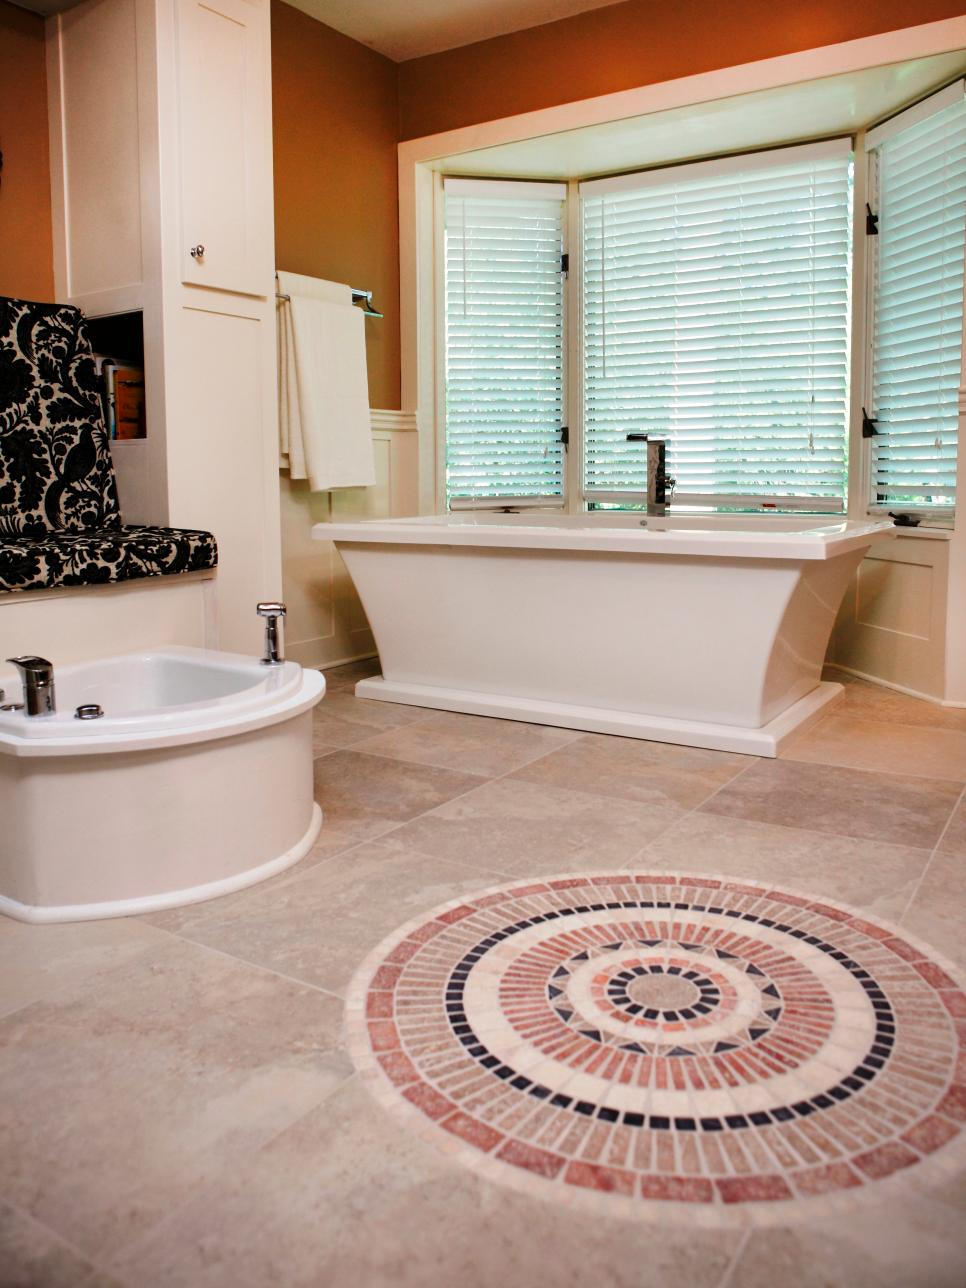 Astounding Design Of The Bathroom Areas Wth Orange Wall Added With Whtie  Tubs And Big Mirror. Gravel Bathroom Floor Idea